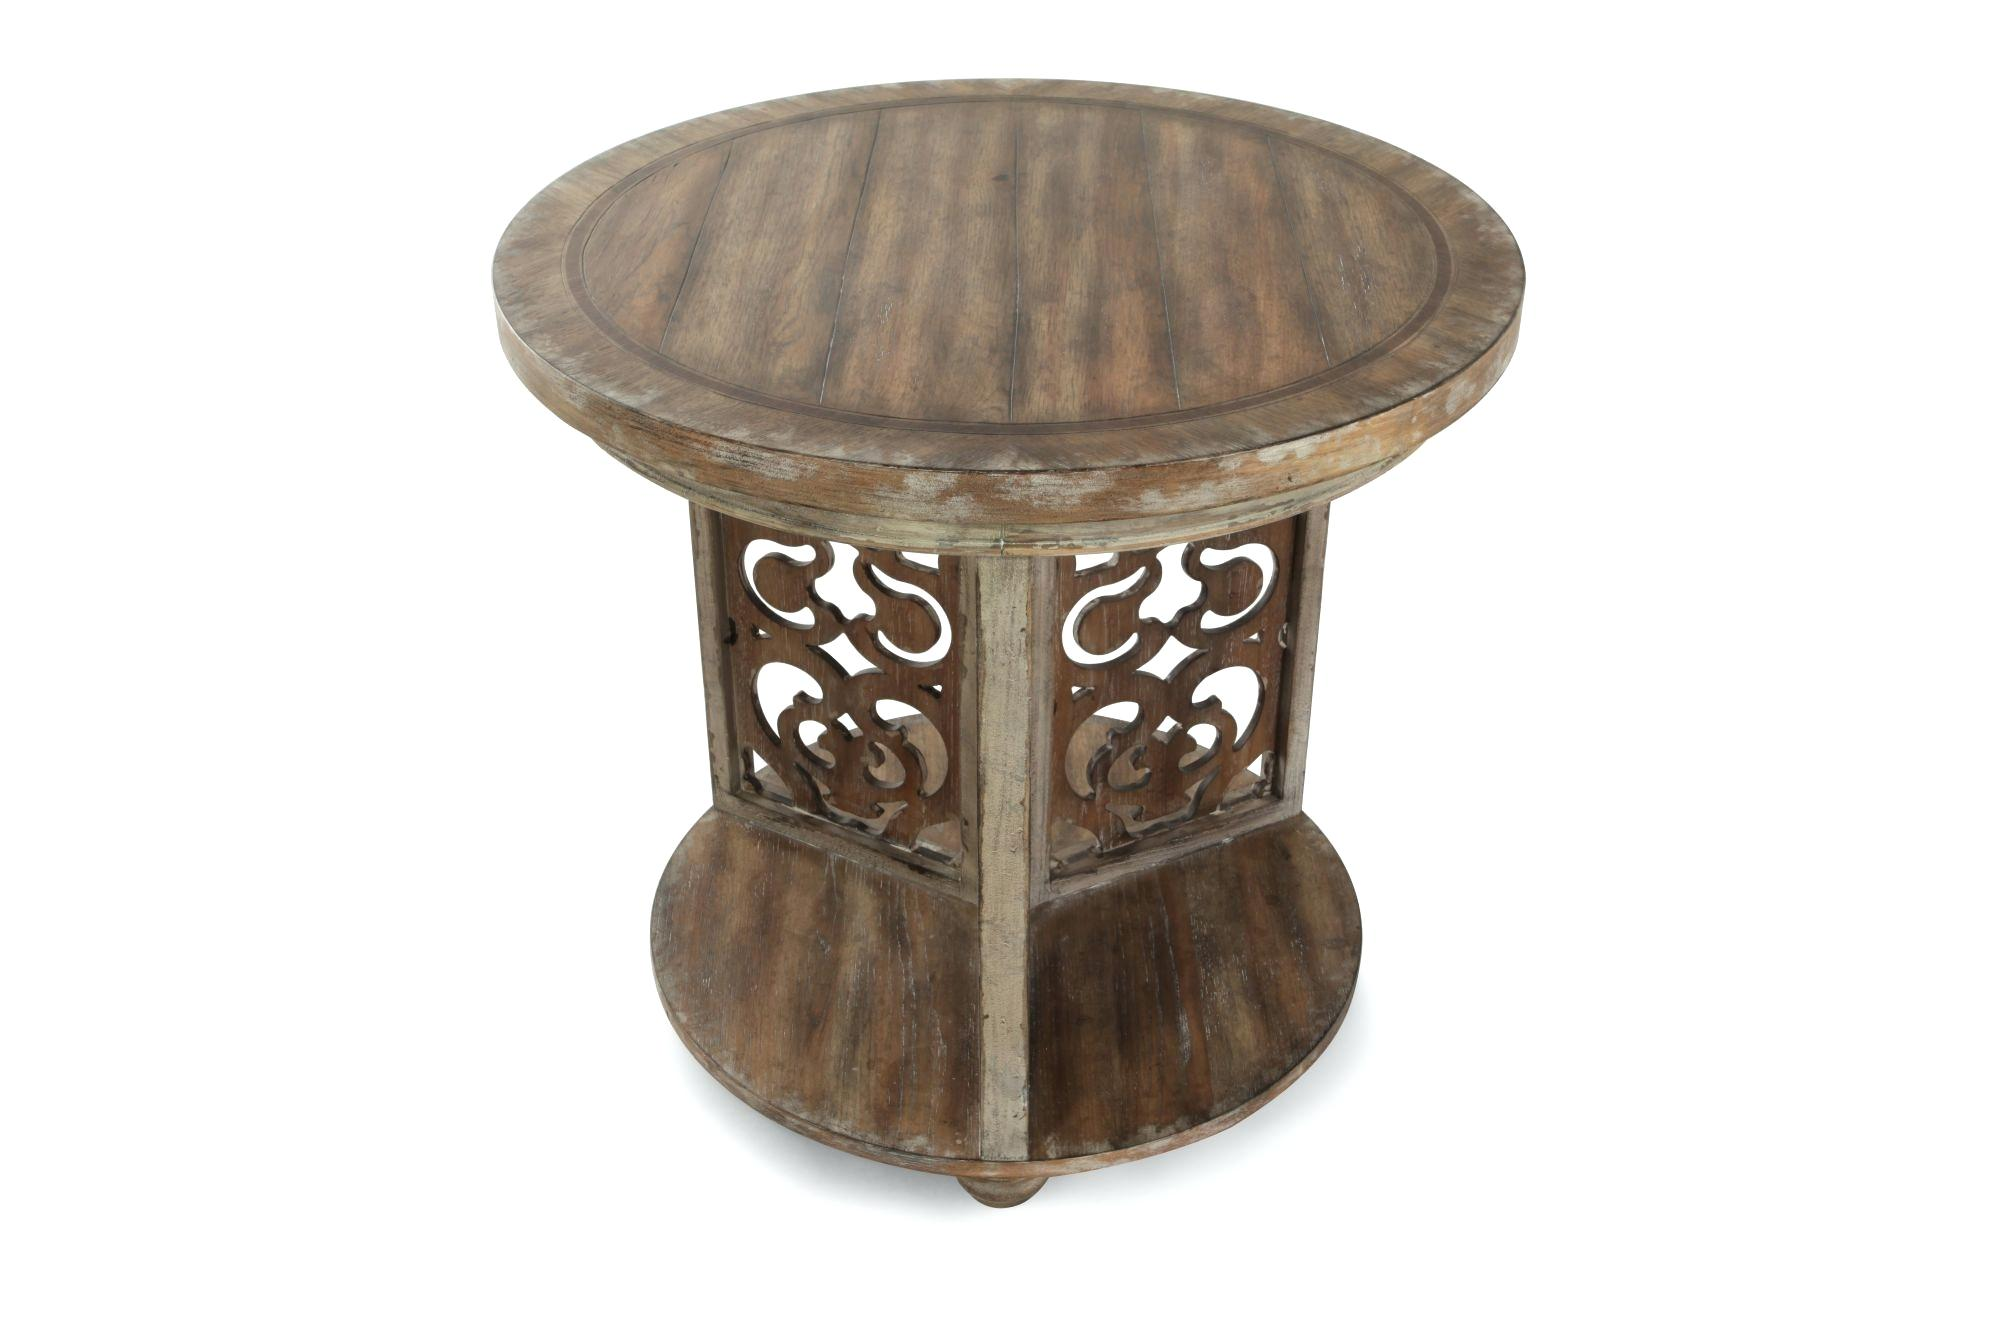 wood and iron accent tables metal ornella adjustable table multi level target traditional scroll round brown brothers kitchen delectable hook full size west elm bar stools small